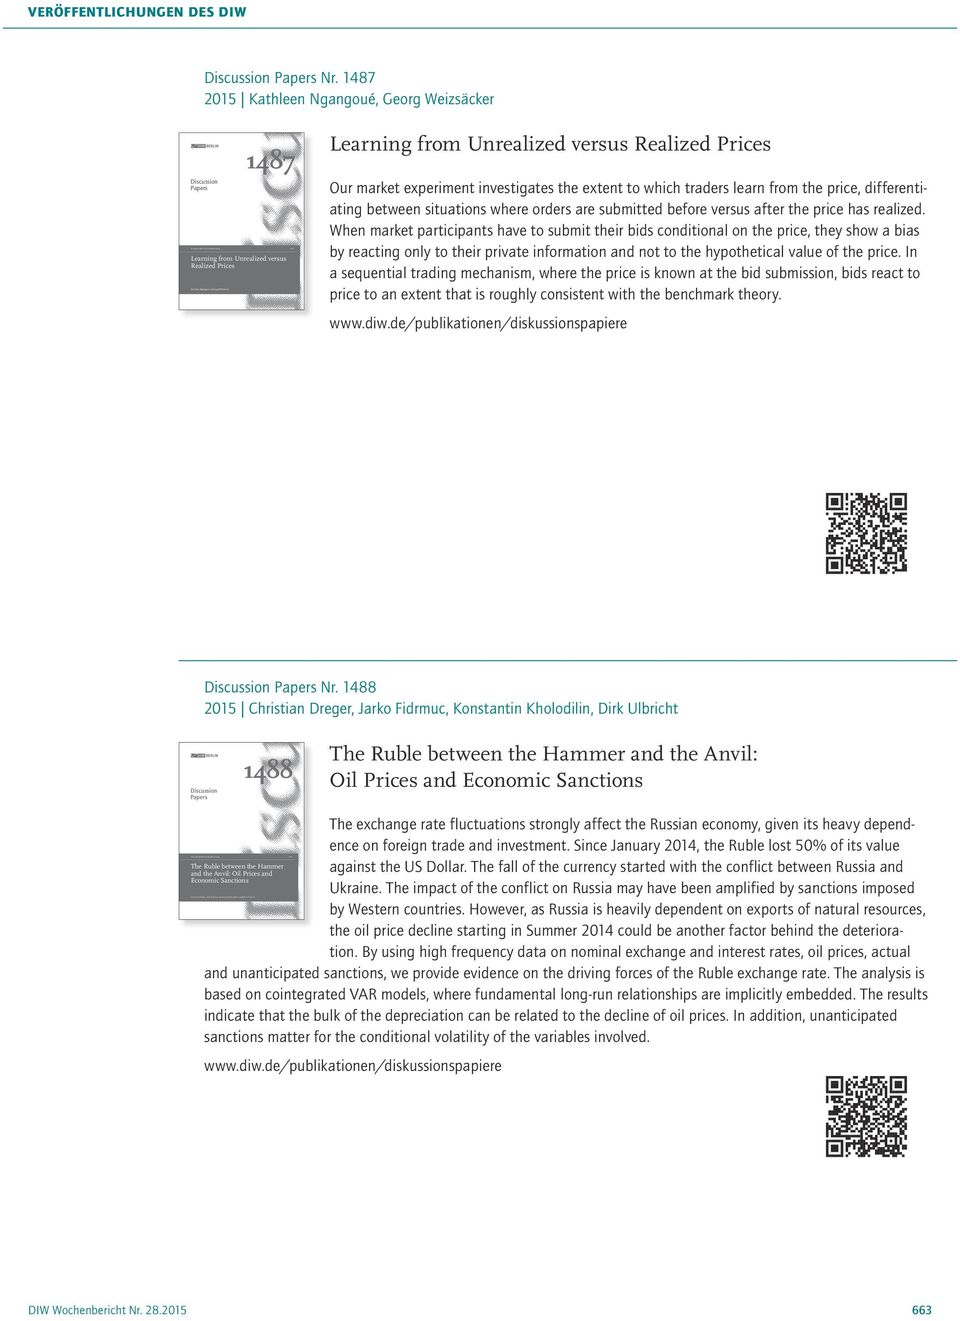 1487 2015 Kathleen Ngangoué, Georg Weizsäcker Discussion Papers 1487 Learning from Unrealized versus Realized Prices Learning from Unrealized versus Realized Prices Our market experiment investigates